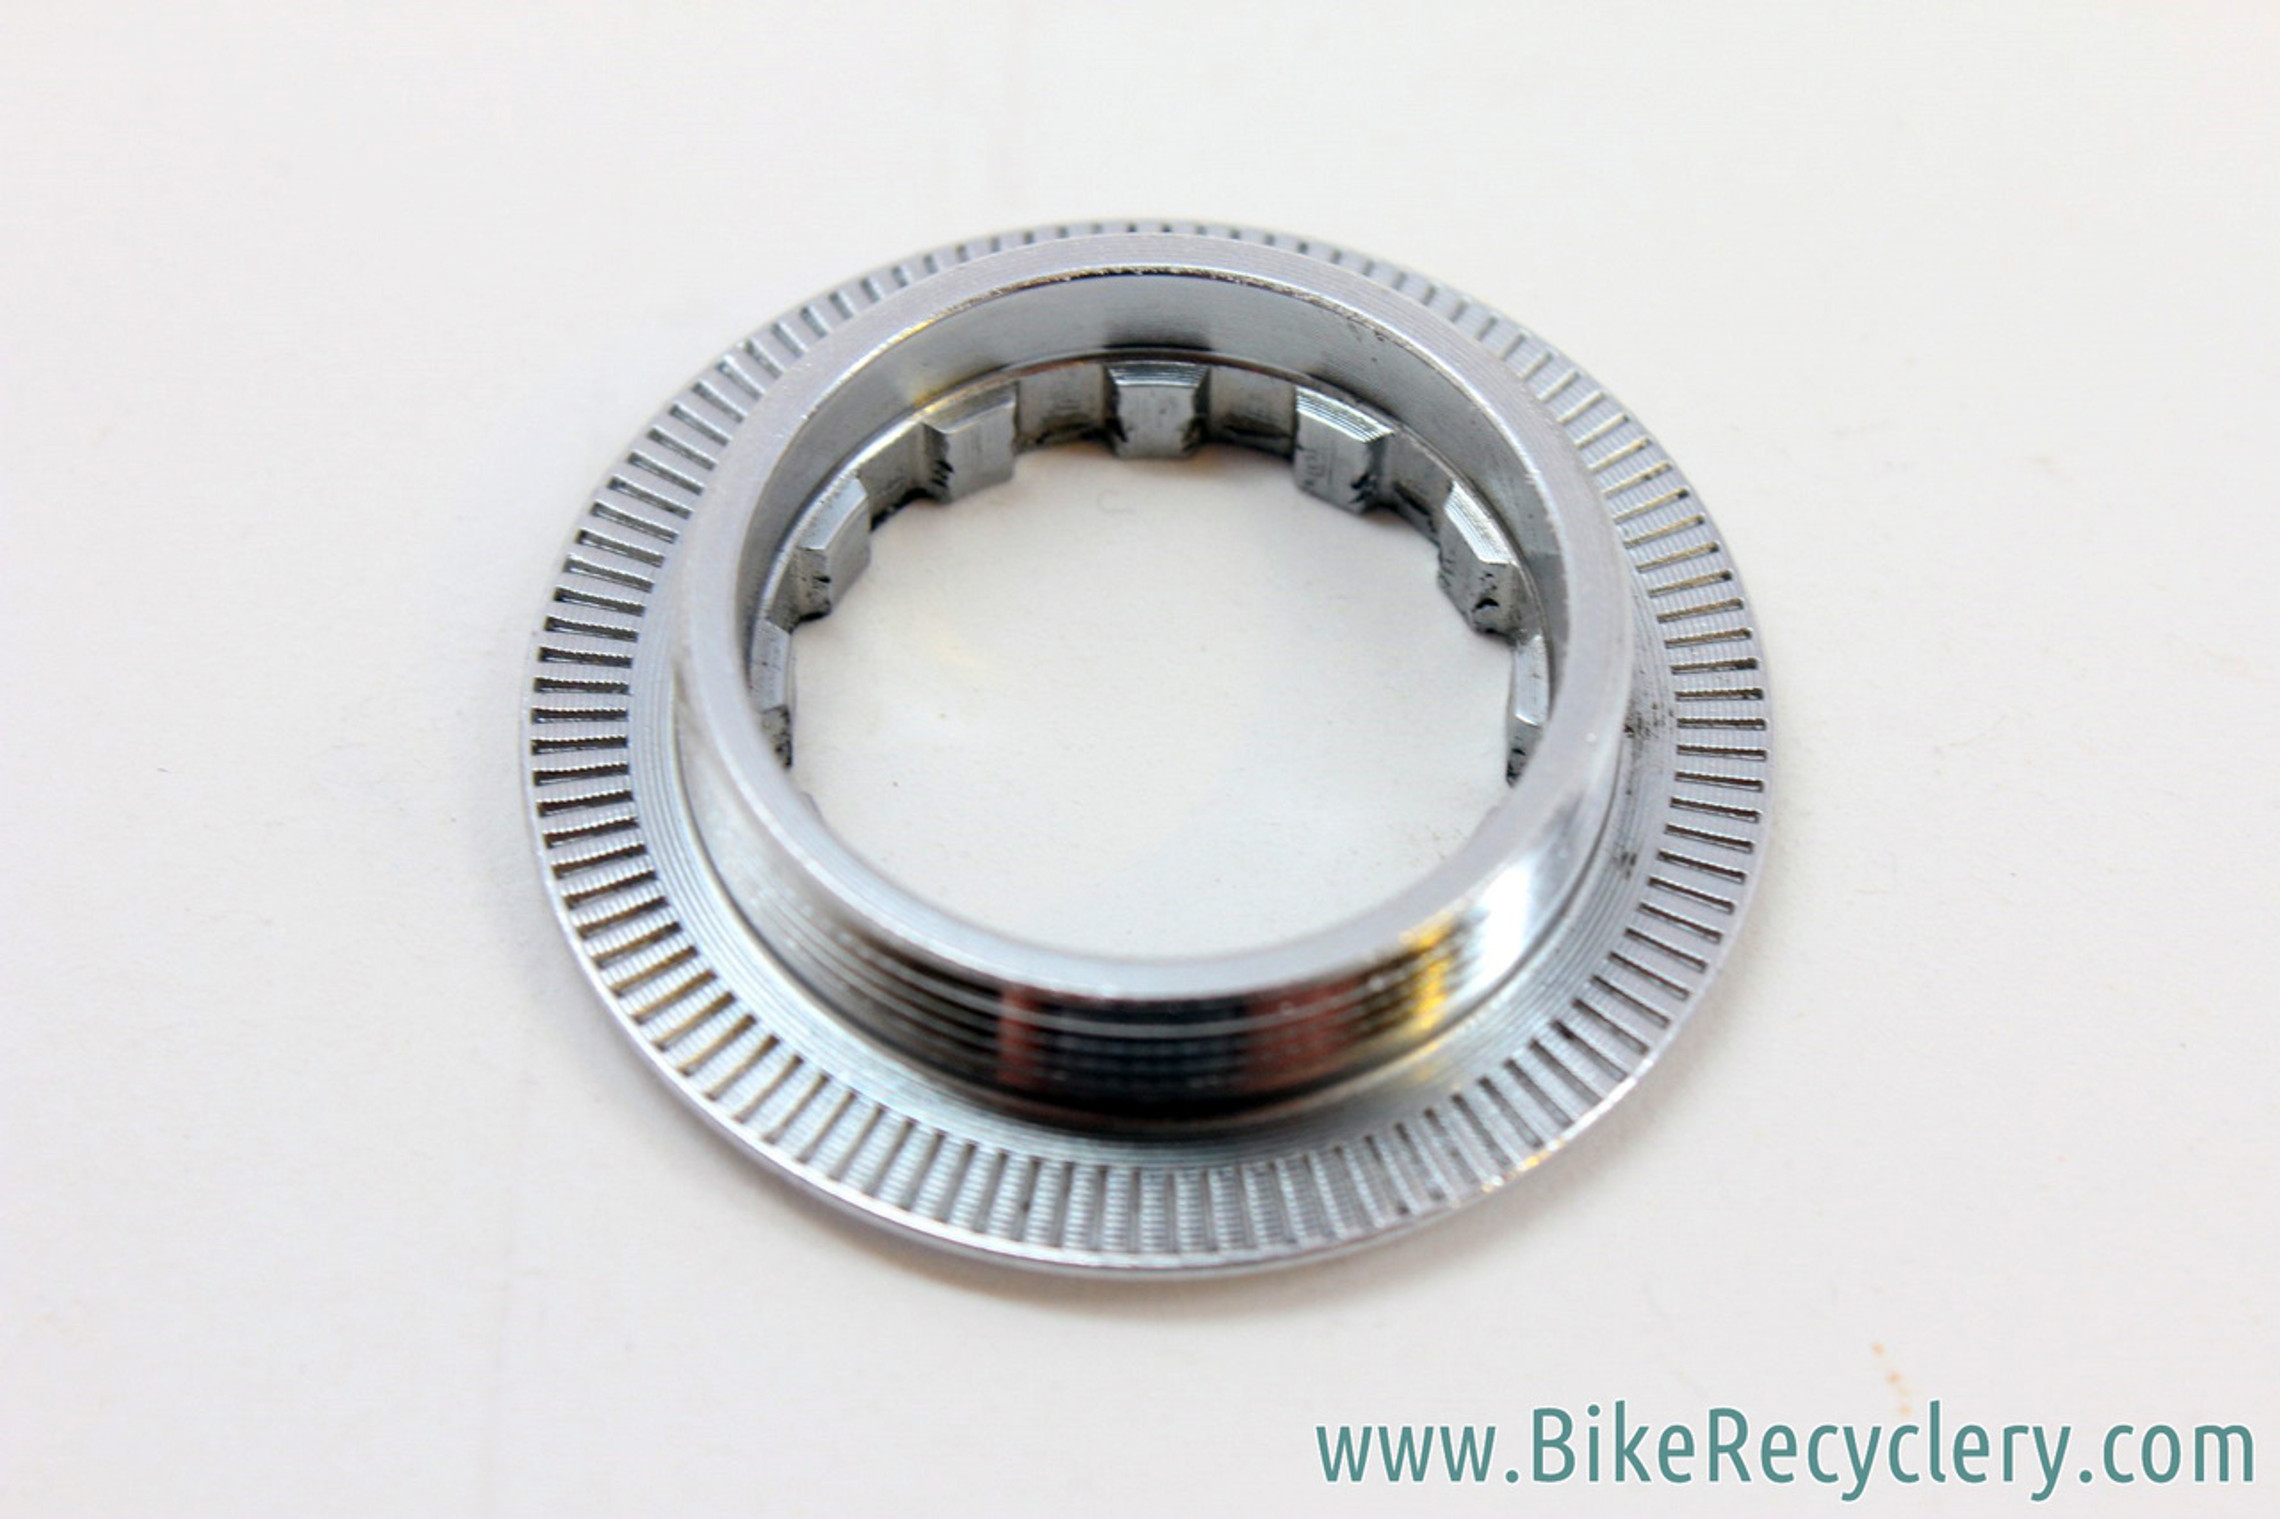 NOS Campagnolo Record 8-Speed Cassette Lockring: 29mm Threads, 38.5mm O.D. For 12t / 13t / 14t First Cog